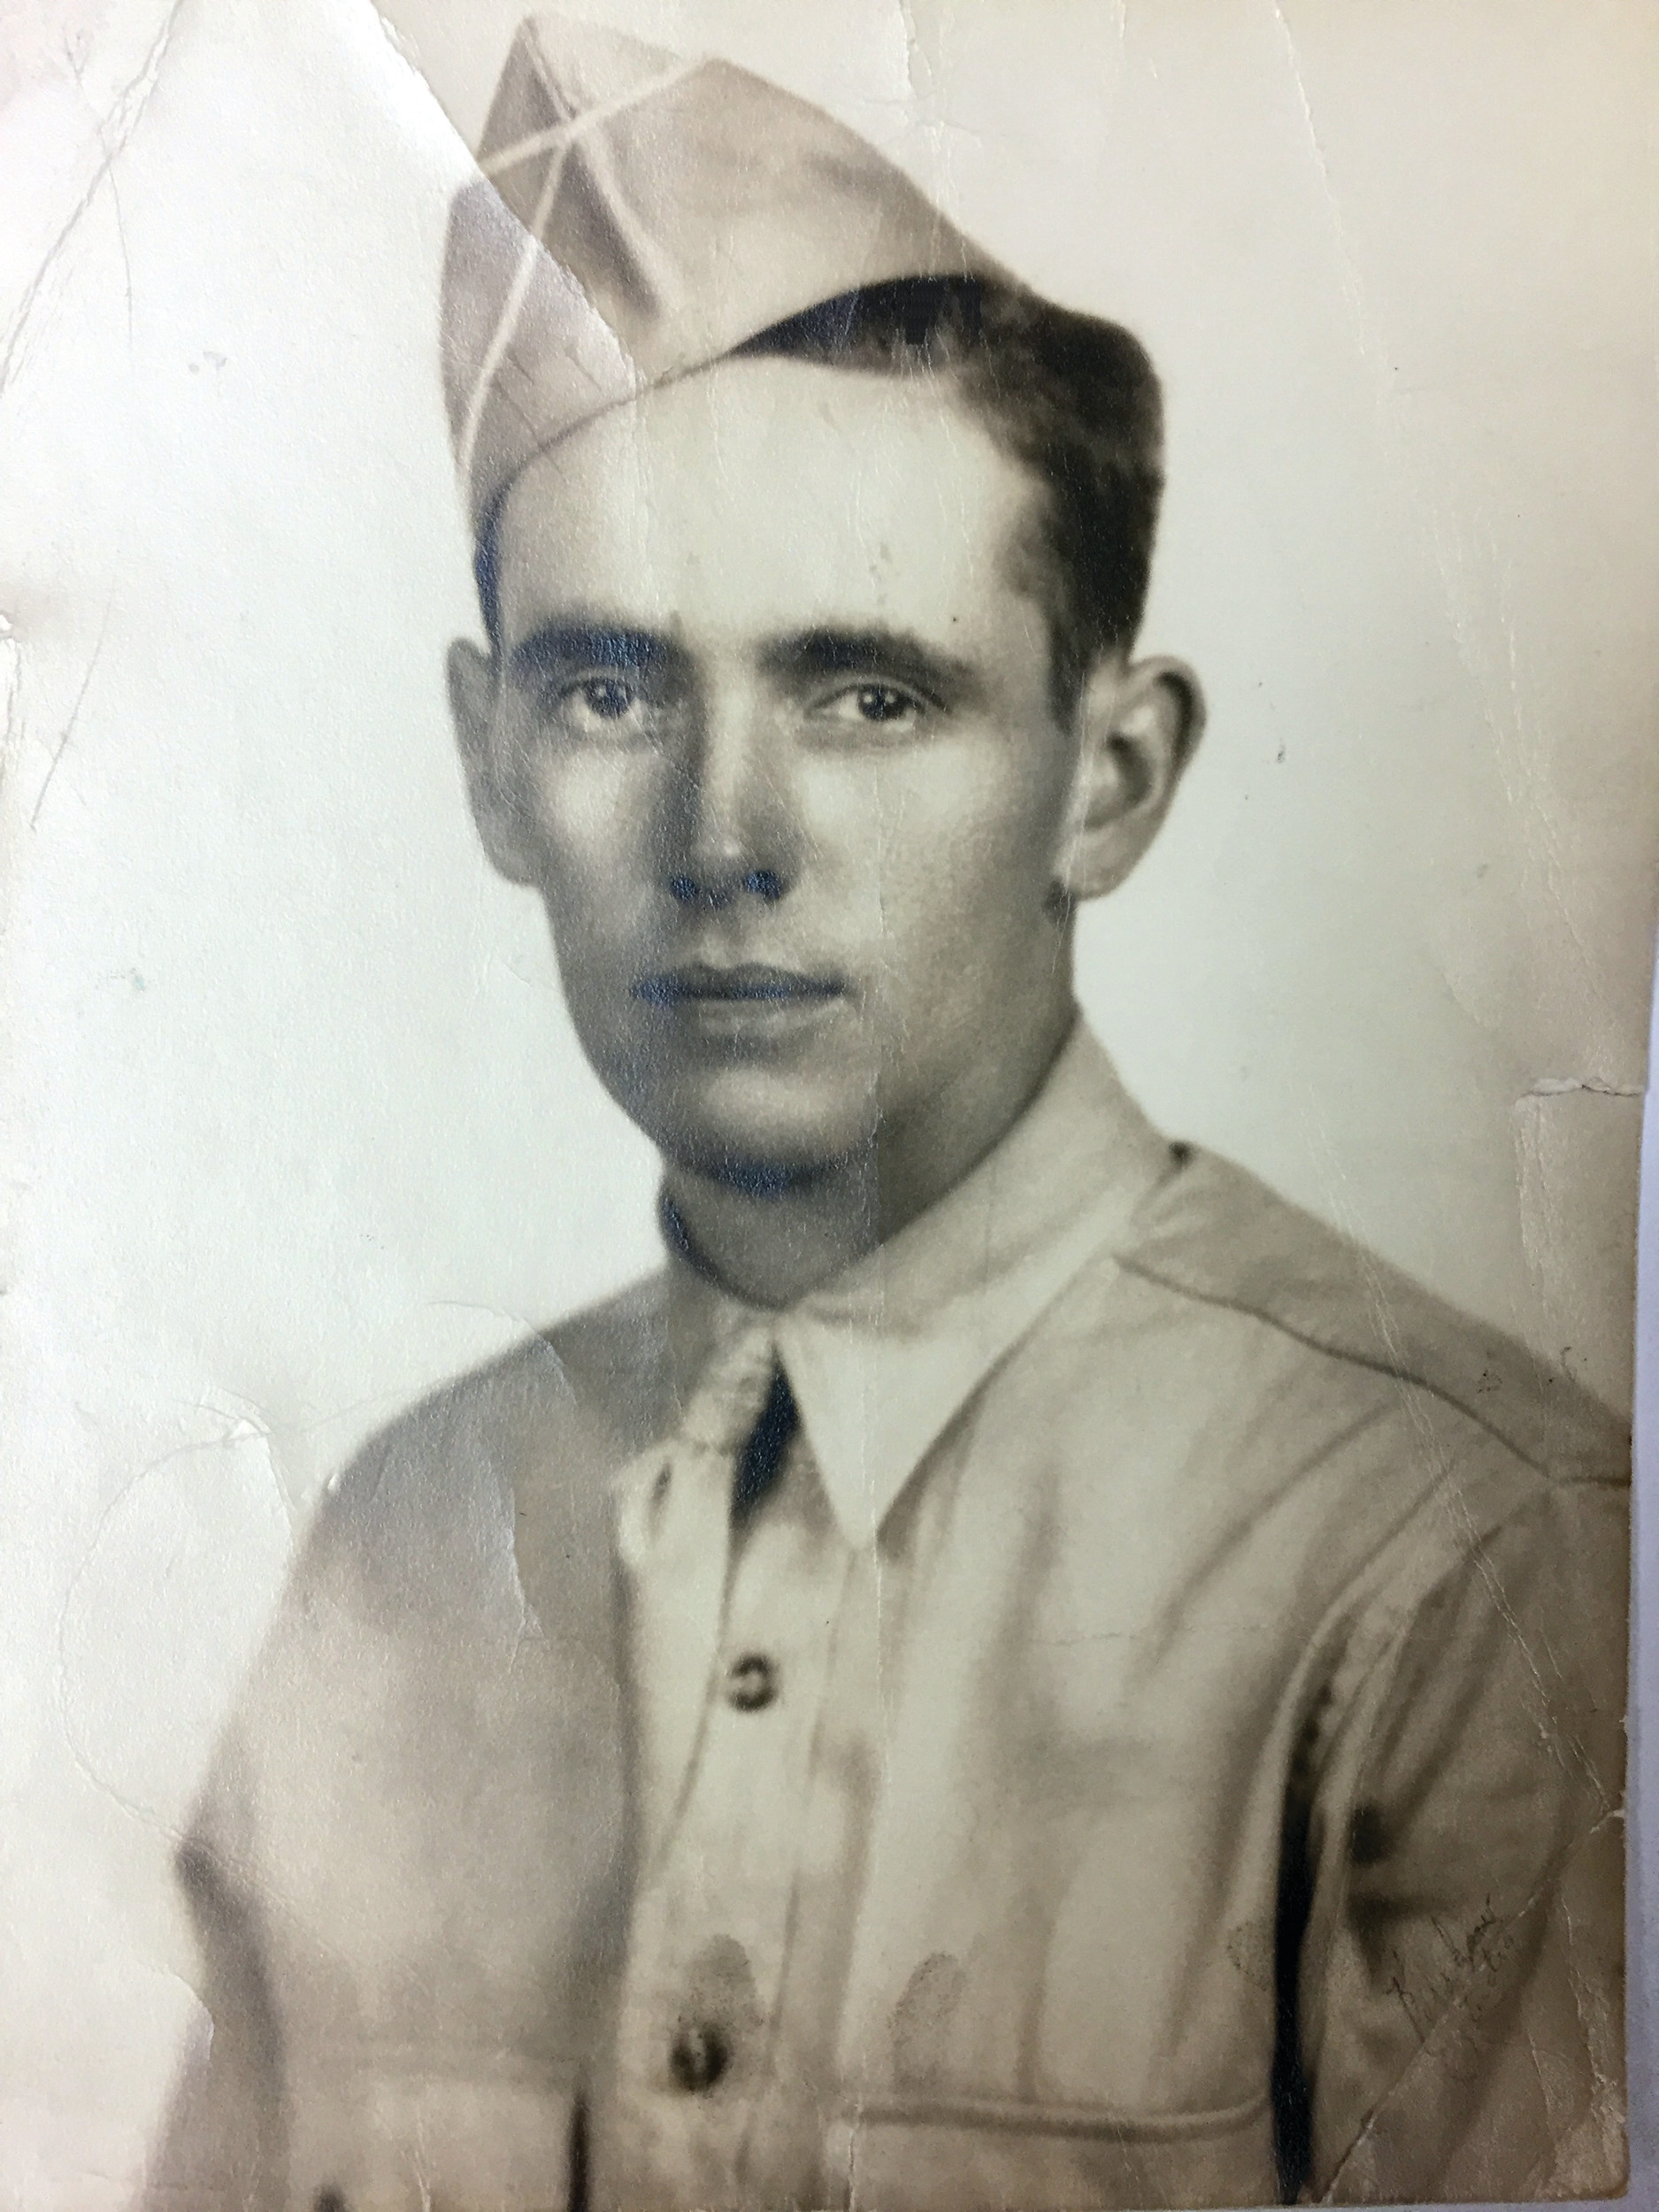 LOCAL HERO: A portrait photograph of Donald H. Rubery, who was born in Warwick on April 23, 1918.